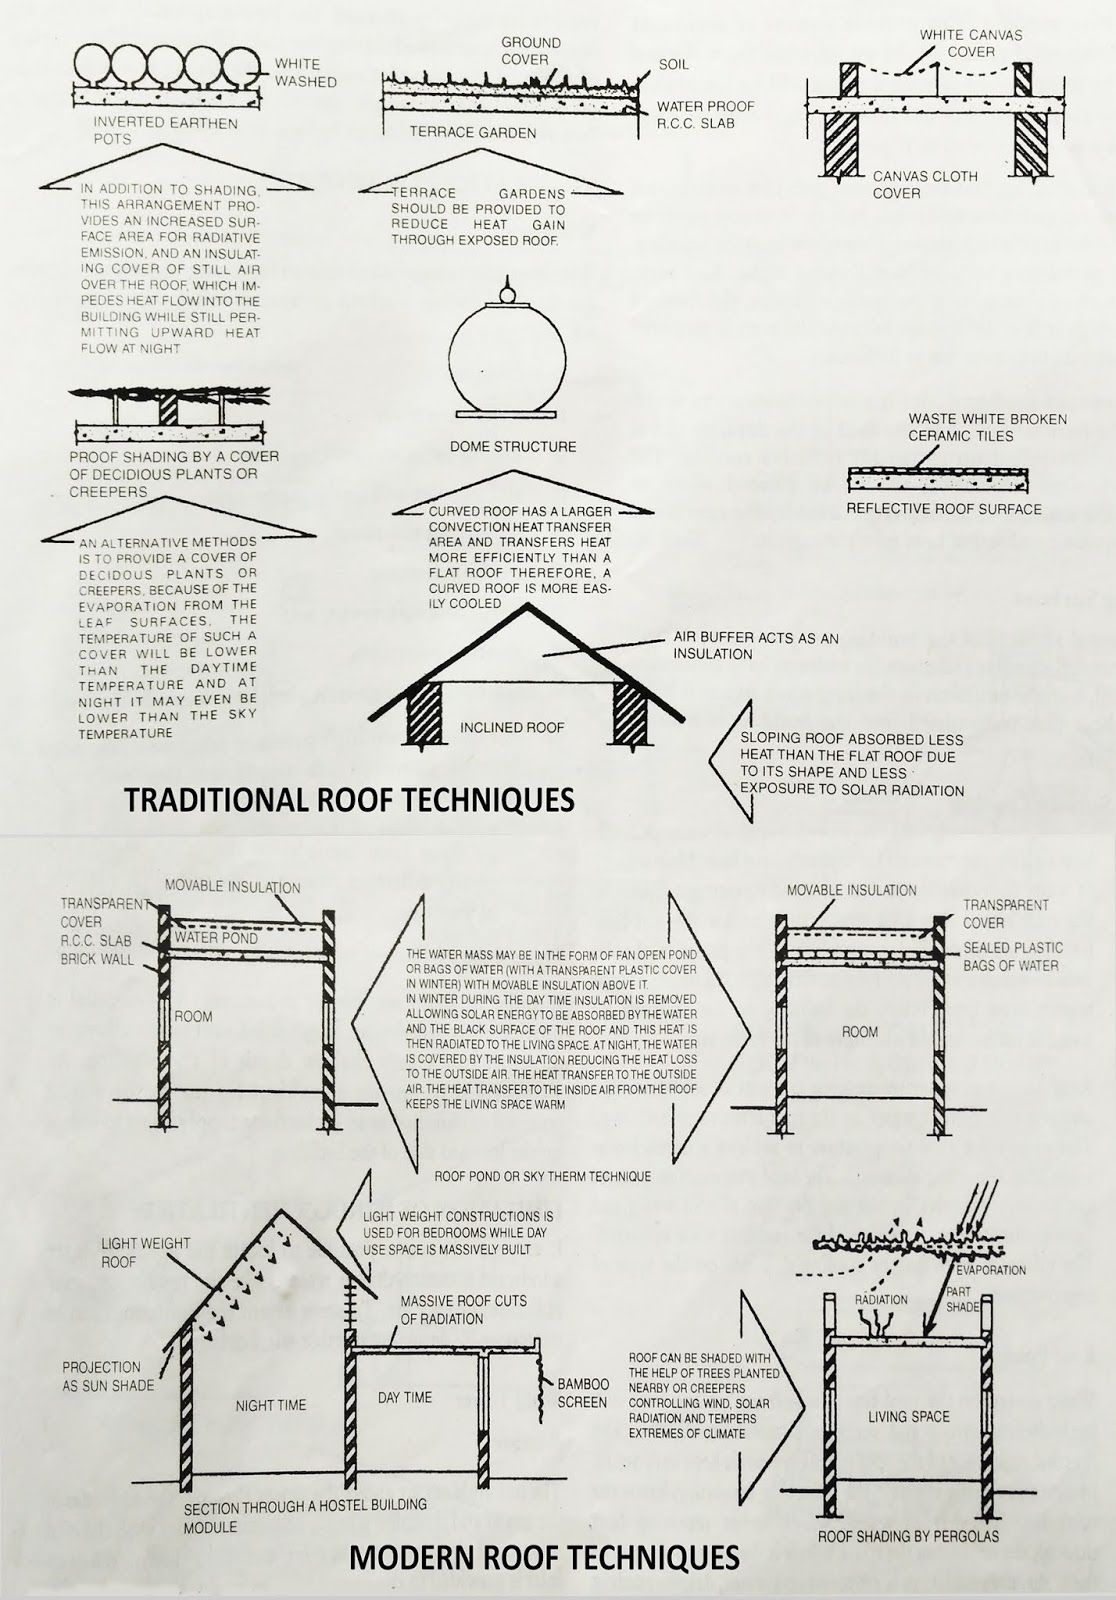 How To Cool Your Roof During Summer Energy Efficient Buildings Shelter Design Modern Roofing